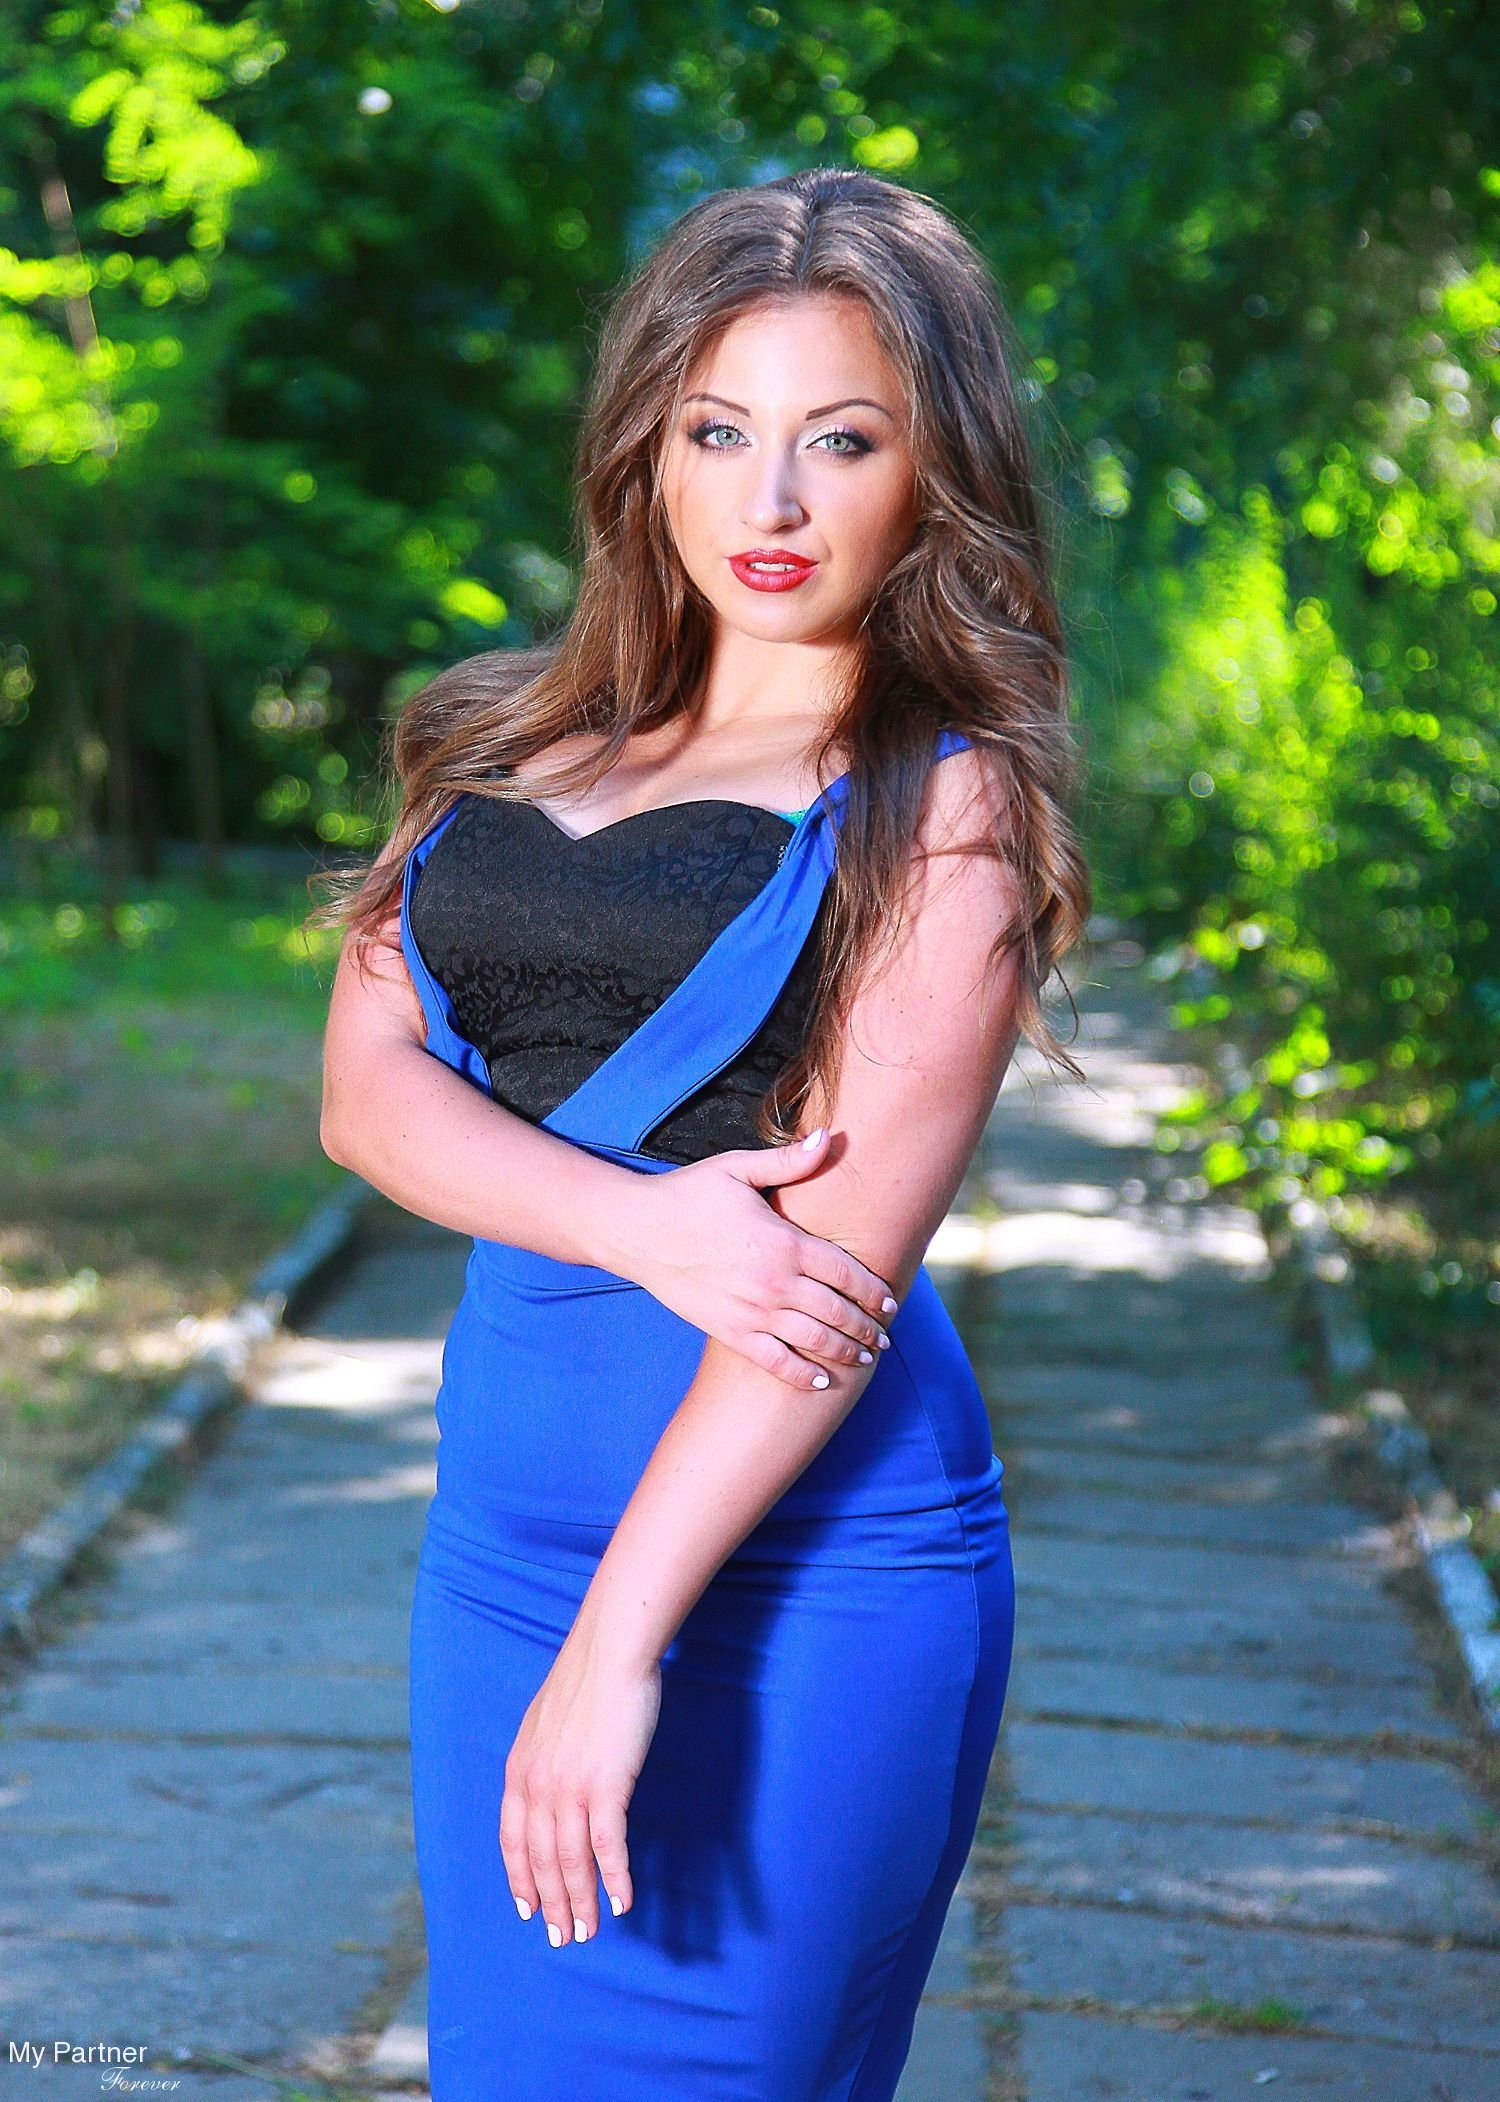 olga mature women personals Meet with hot and beautiful single russian women and girls who are seeking true love on the world's trusted dating site sign up free to find the true love.